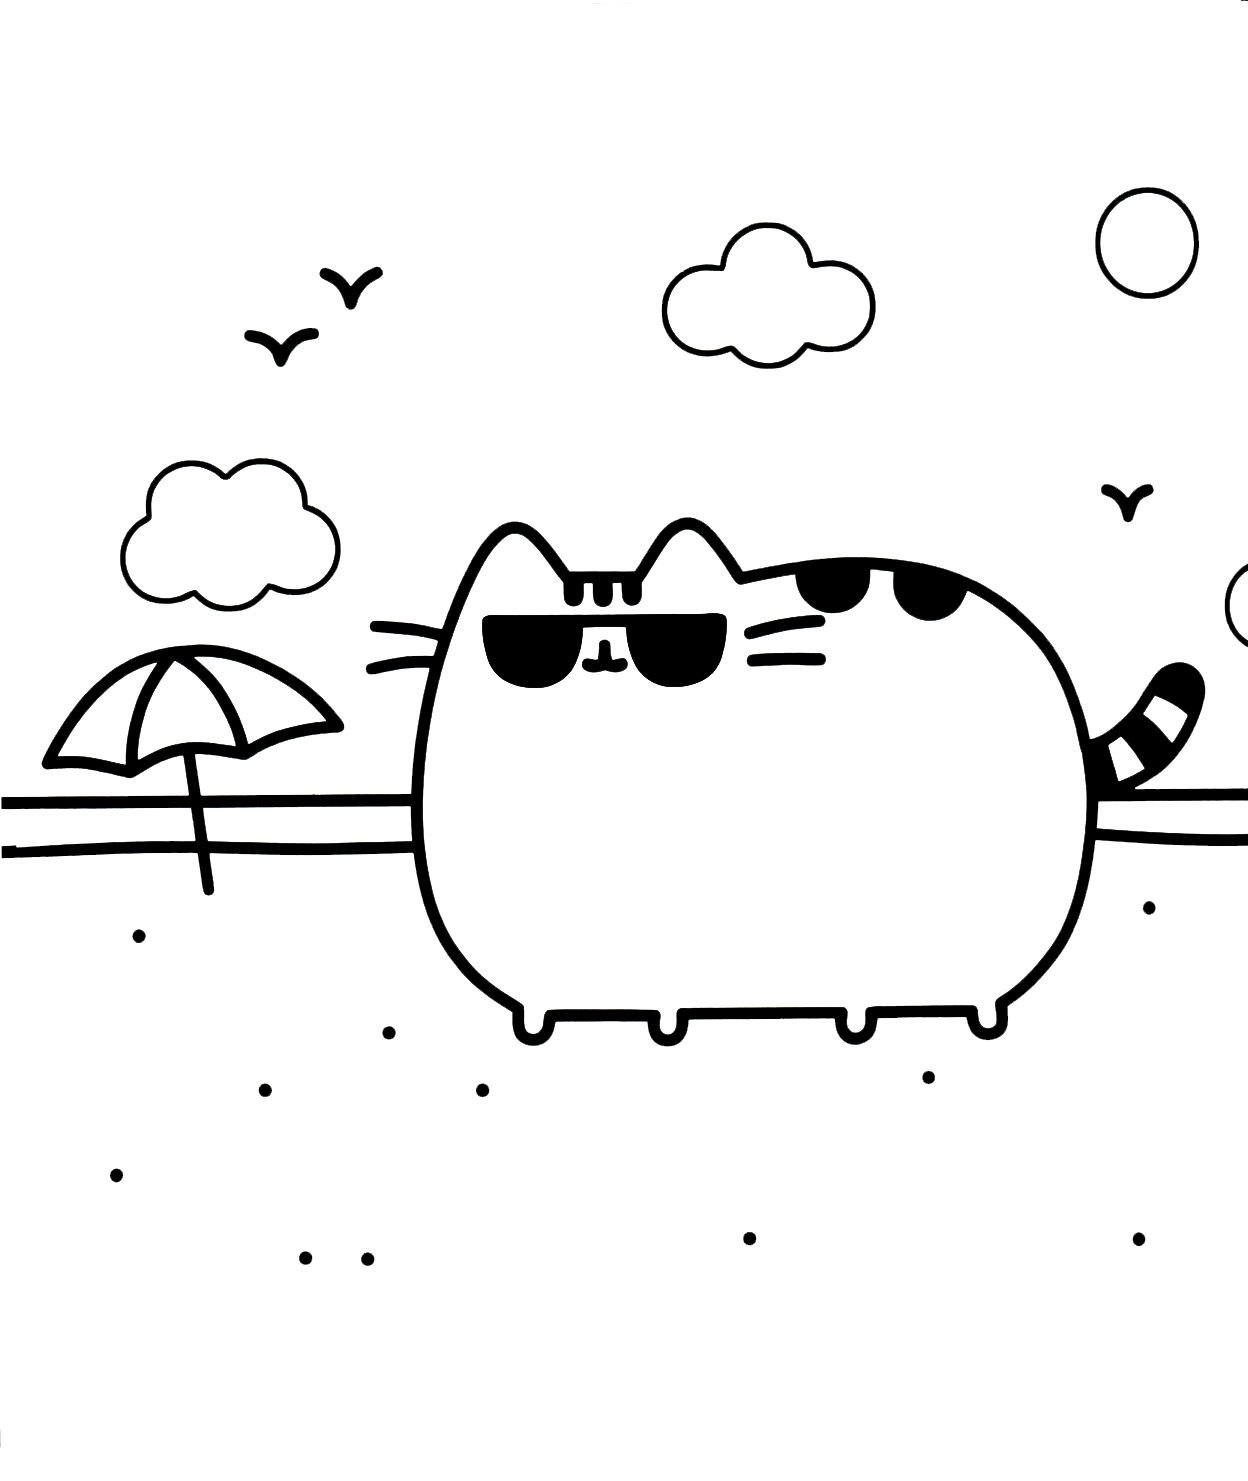 Coloring Pages Pusheen : Pusheen coloring book the cat